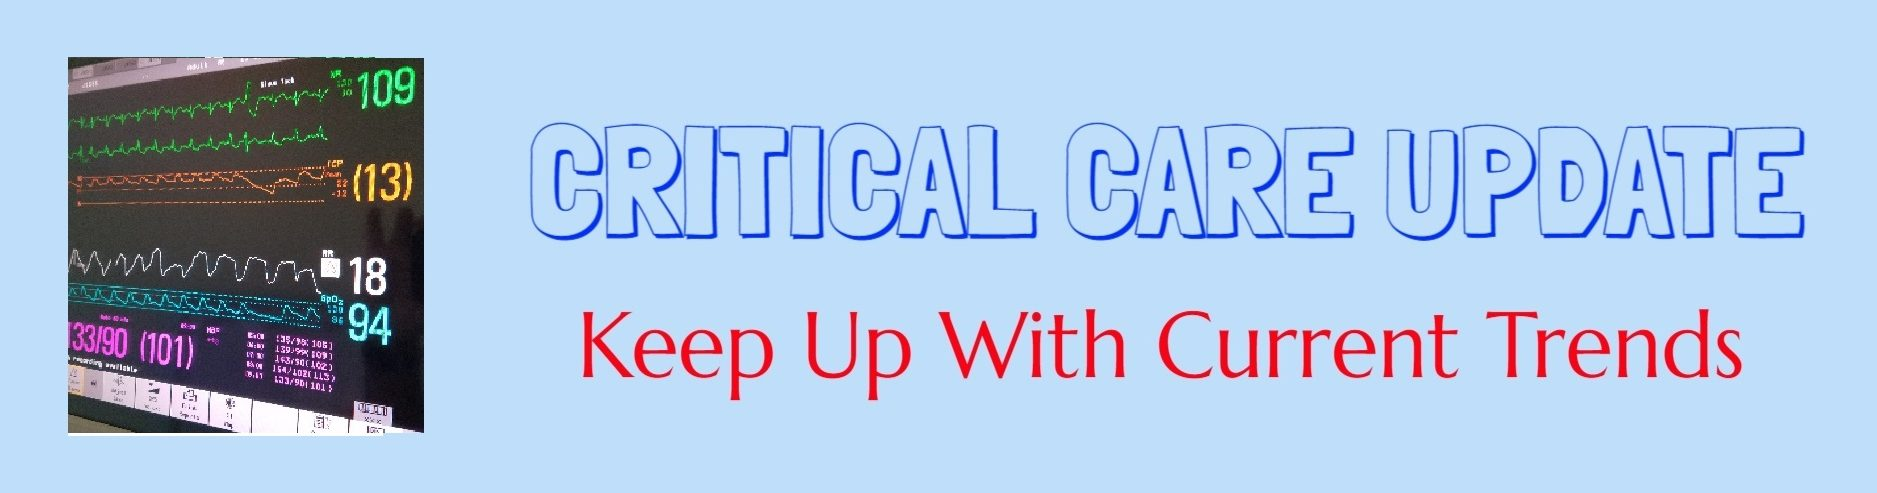 Critical Care Update